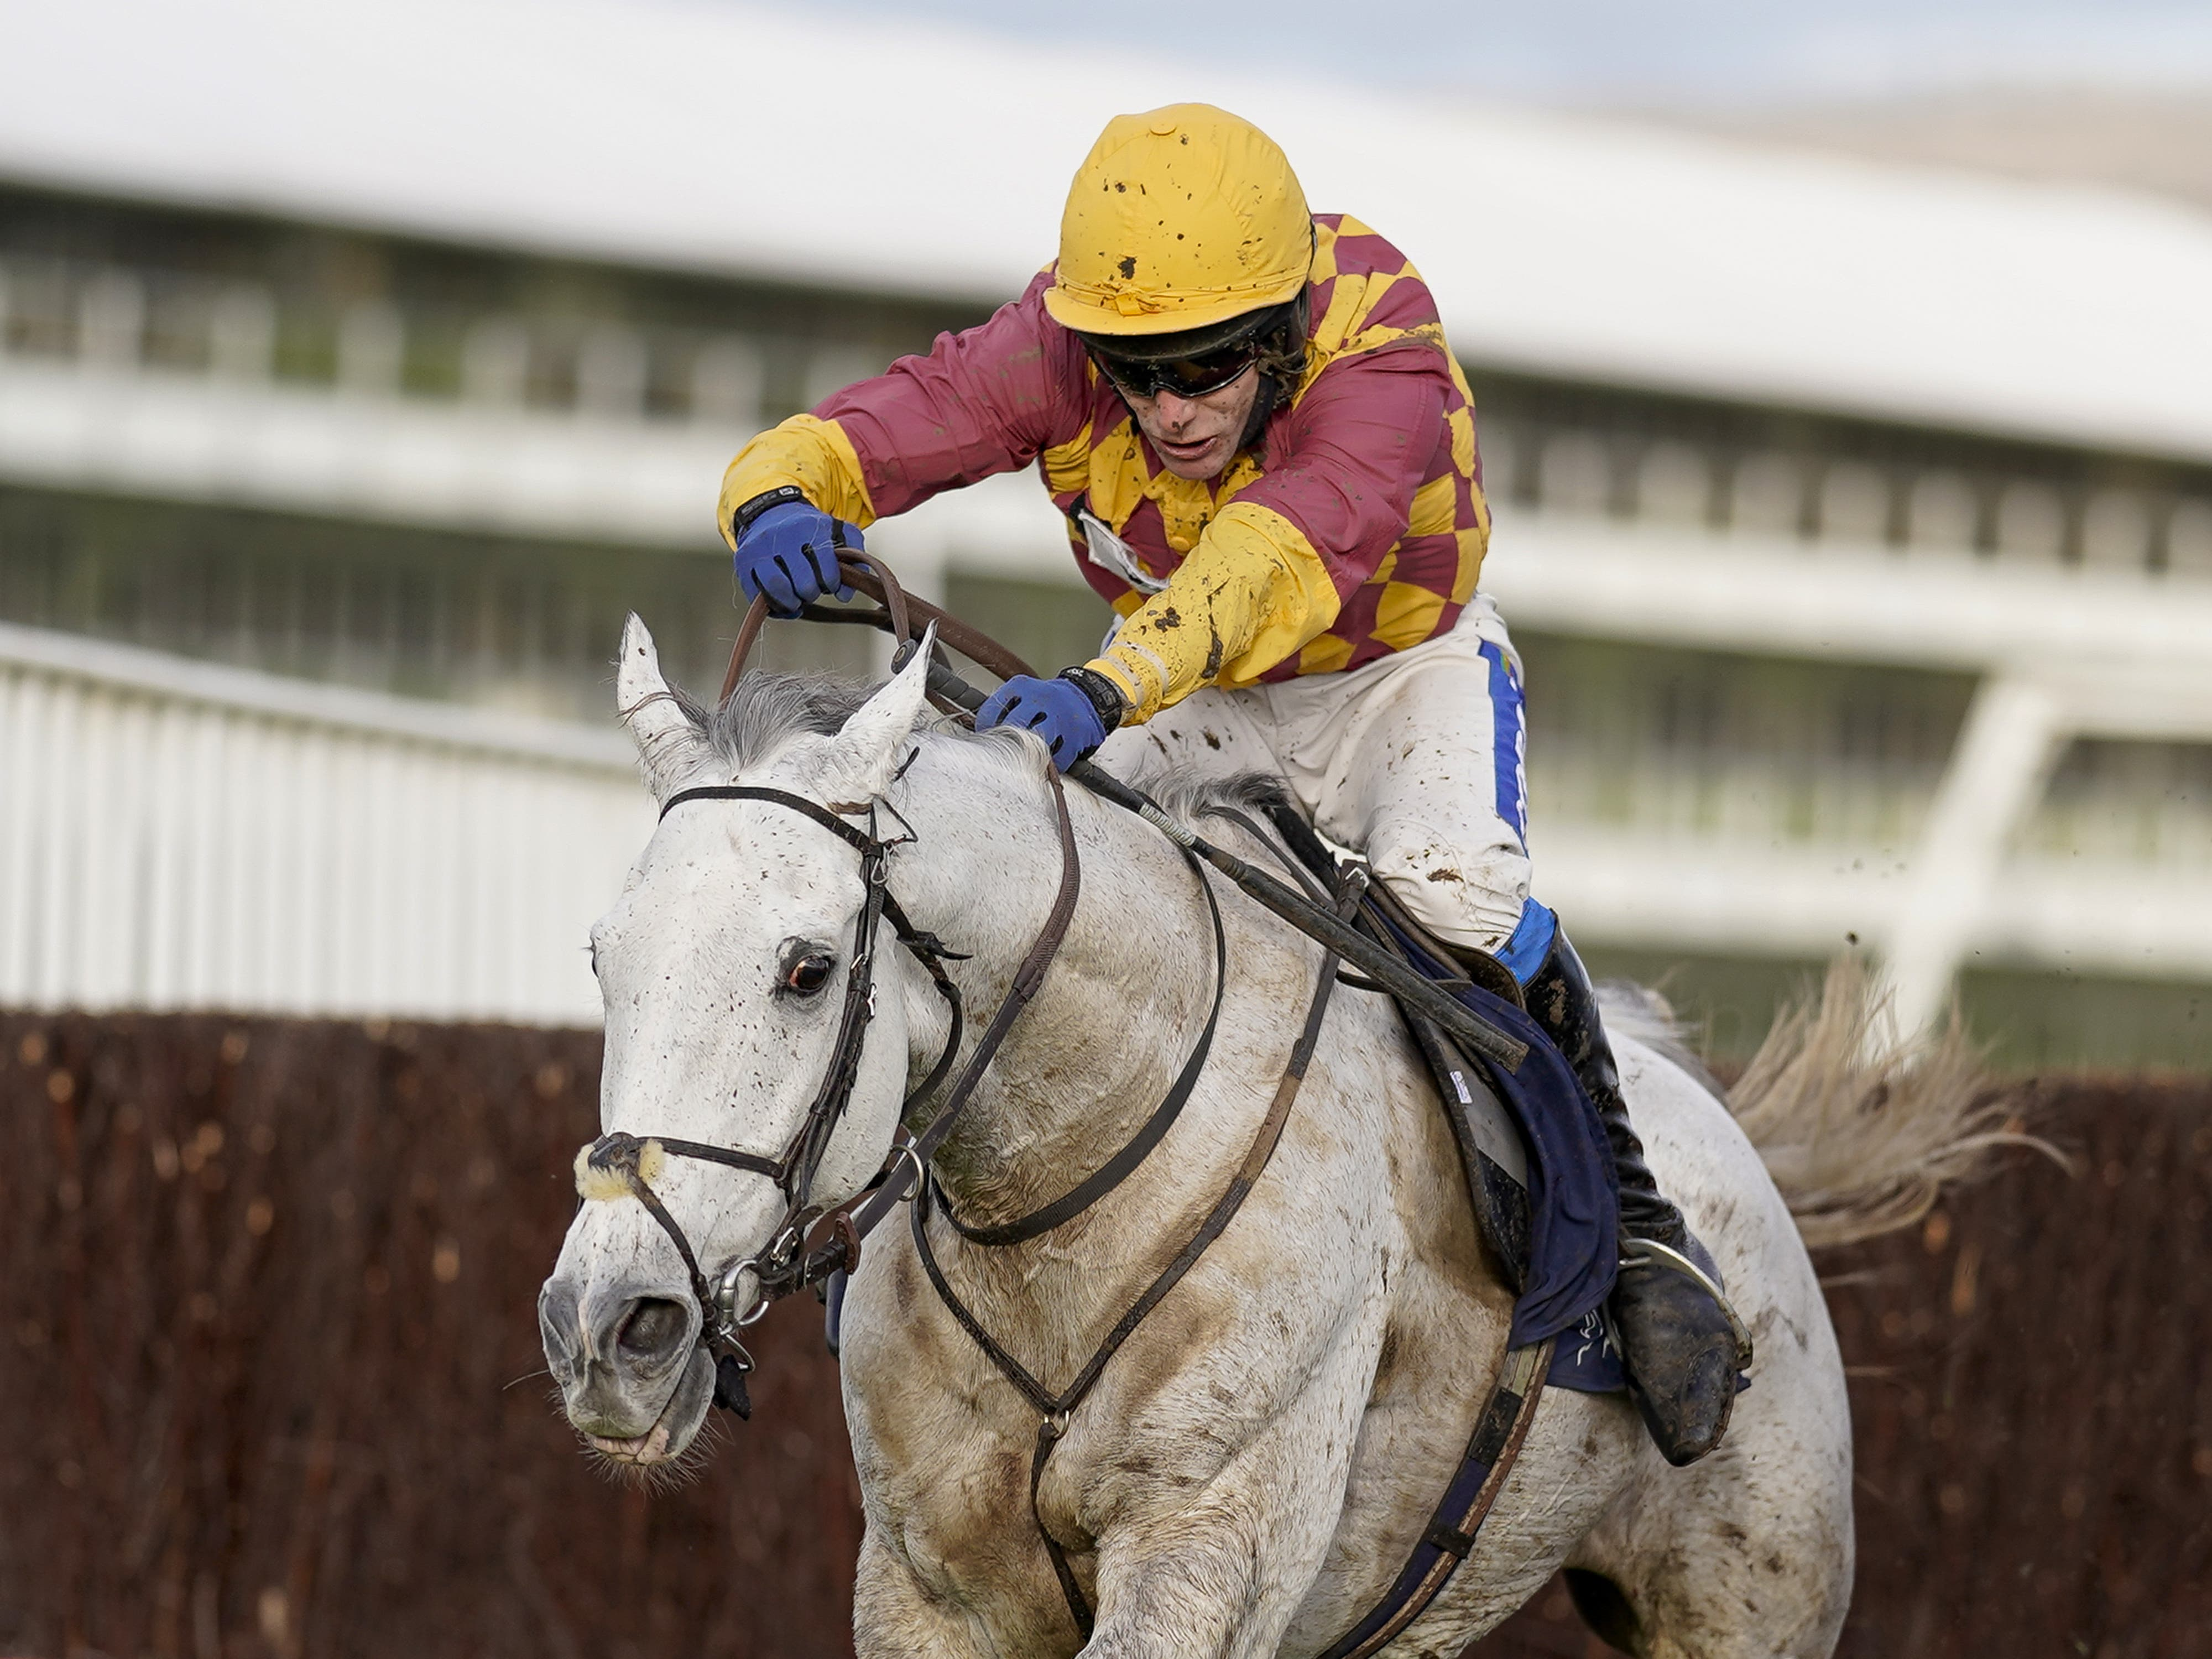 Ramses de Teillee on his way to wining at Cheltenham (Alan Crowhurst/PA)